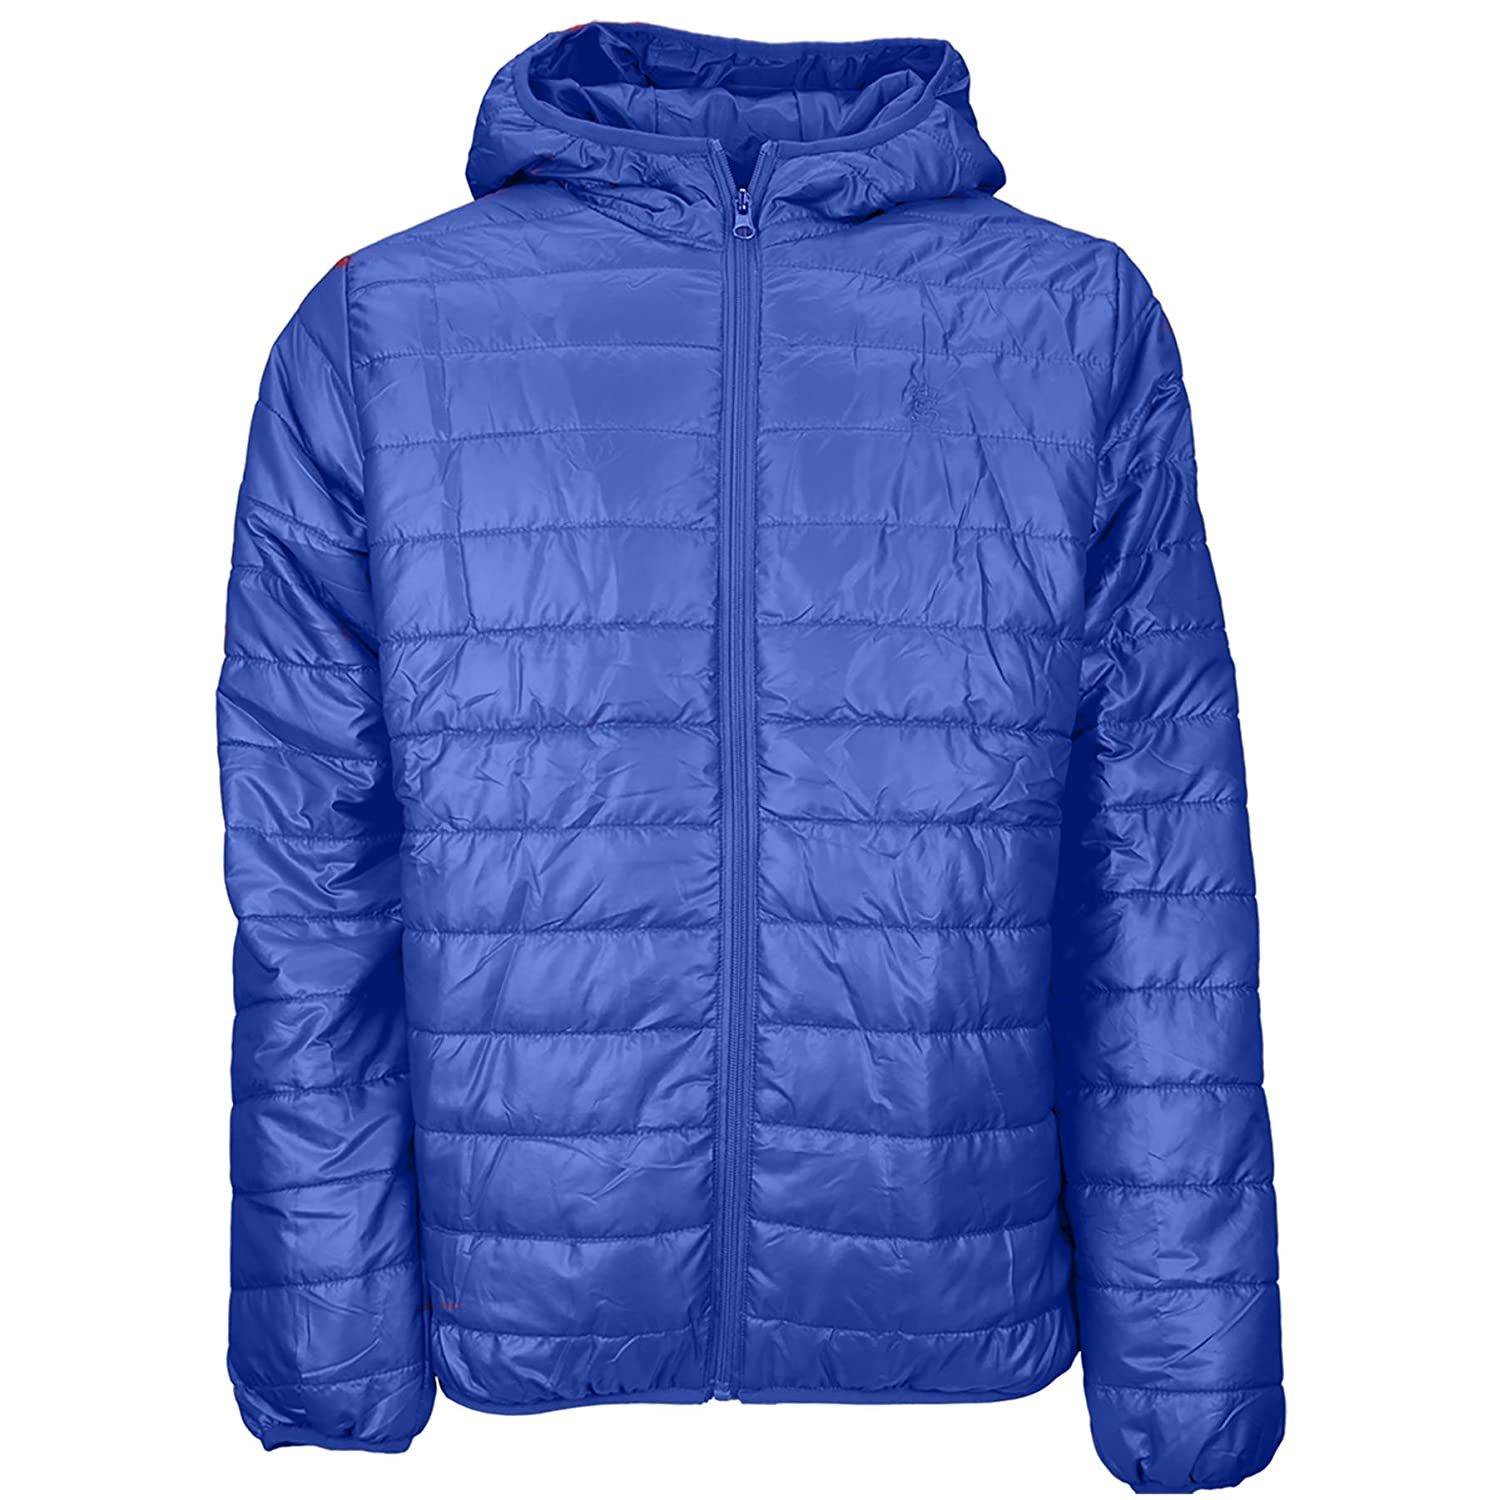 67c688278 Soulstar Mens Hester Wuilted Bubble Jackets Lightweight Hooded Puffer Coat  - Royal Blue